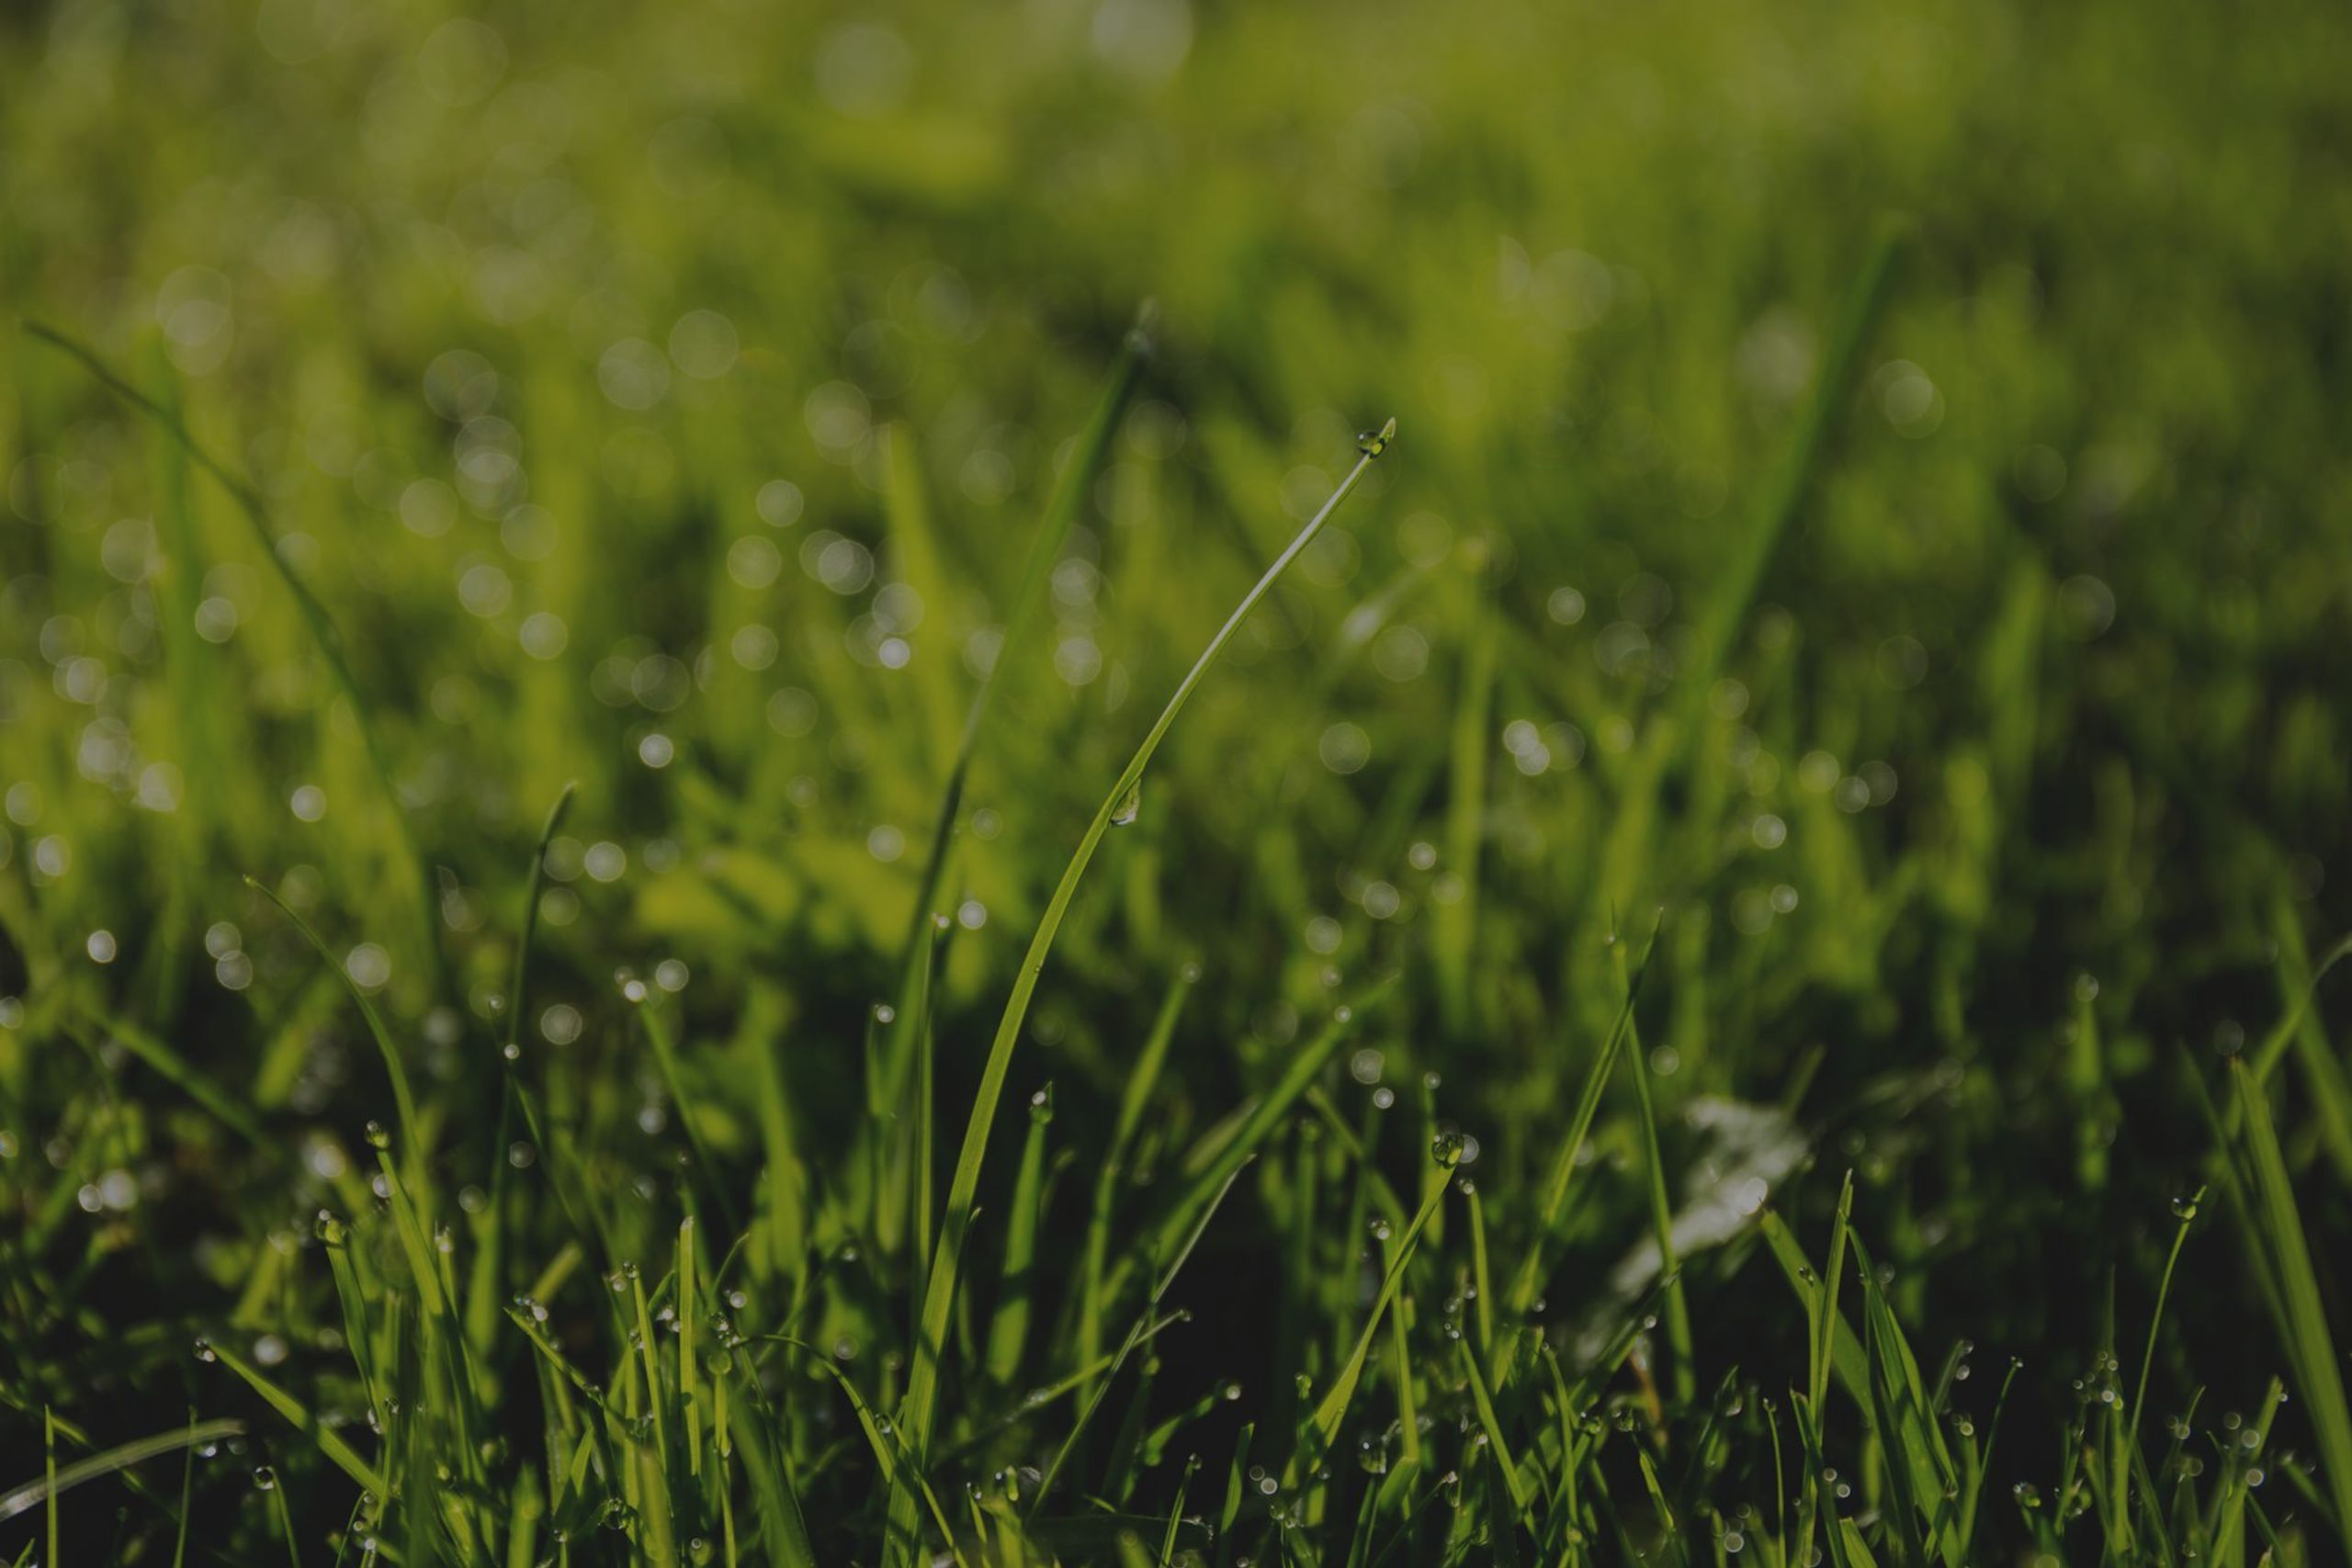 ​Taking Care of Your Michigan Lawn Without Wasting Resources